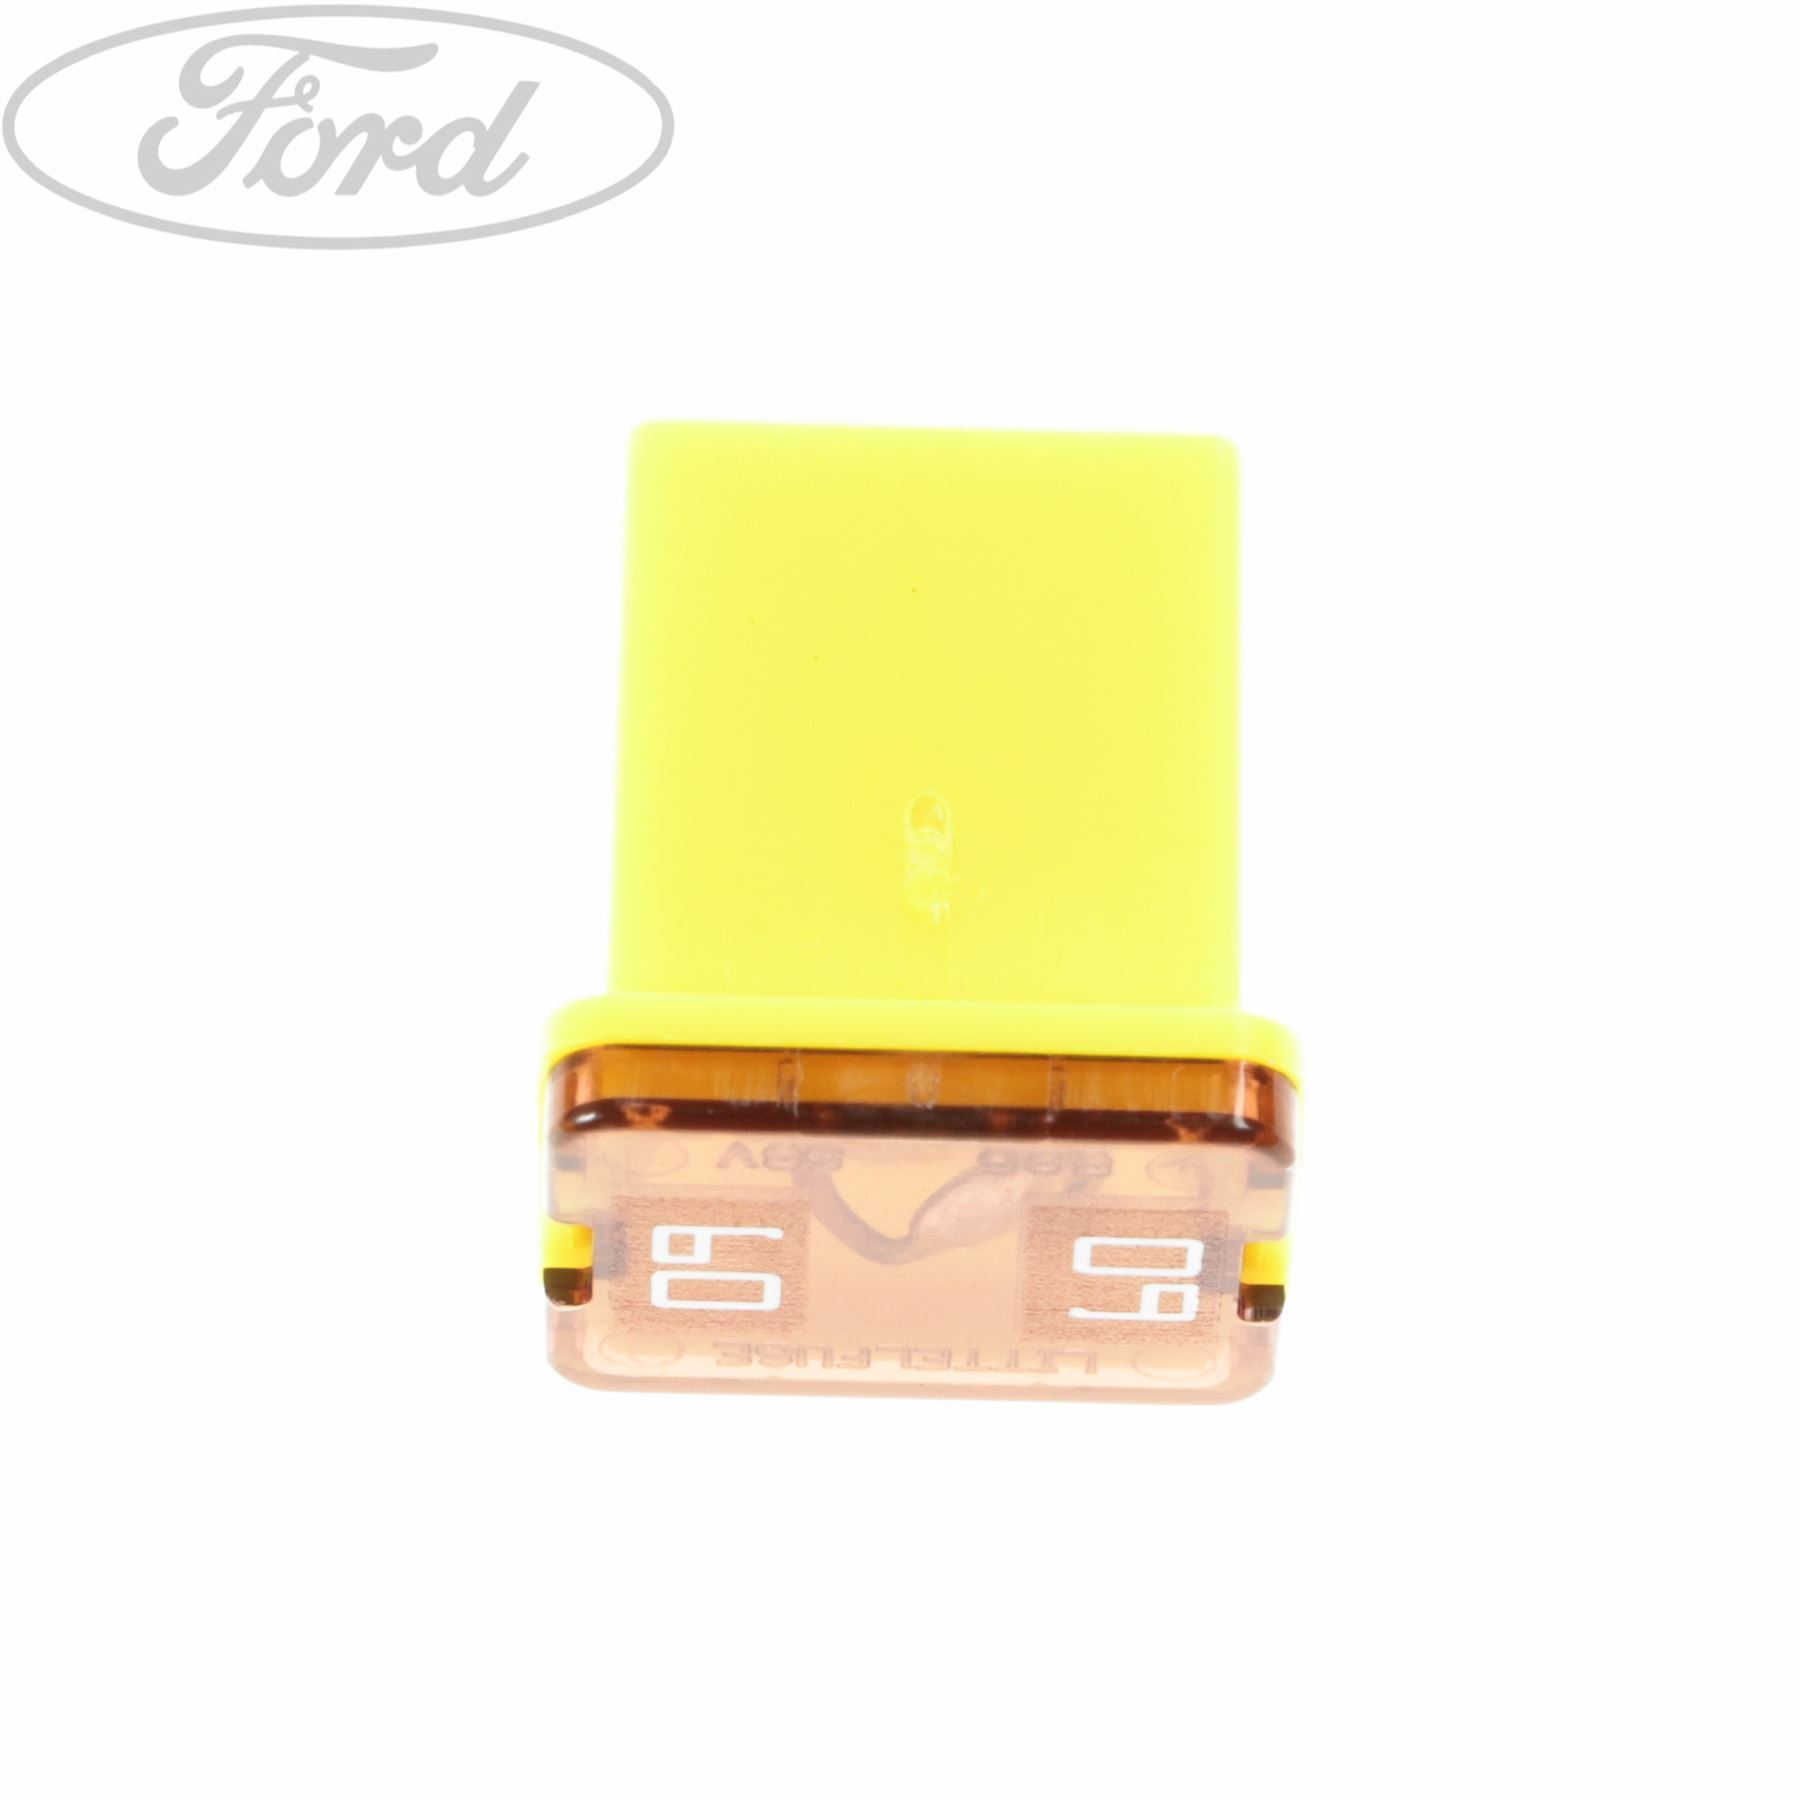 hight resolution of details about genuine ford mondeo mk4 galaxy s max fiesta mk7 circuit breaker 4780769